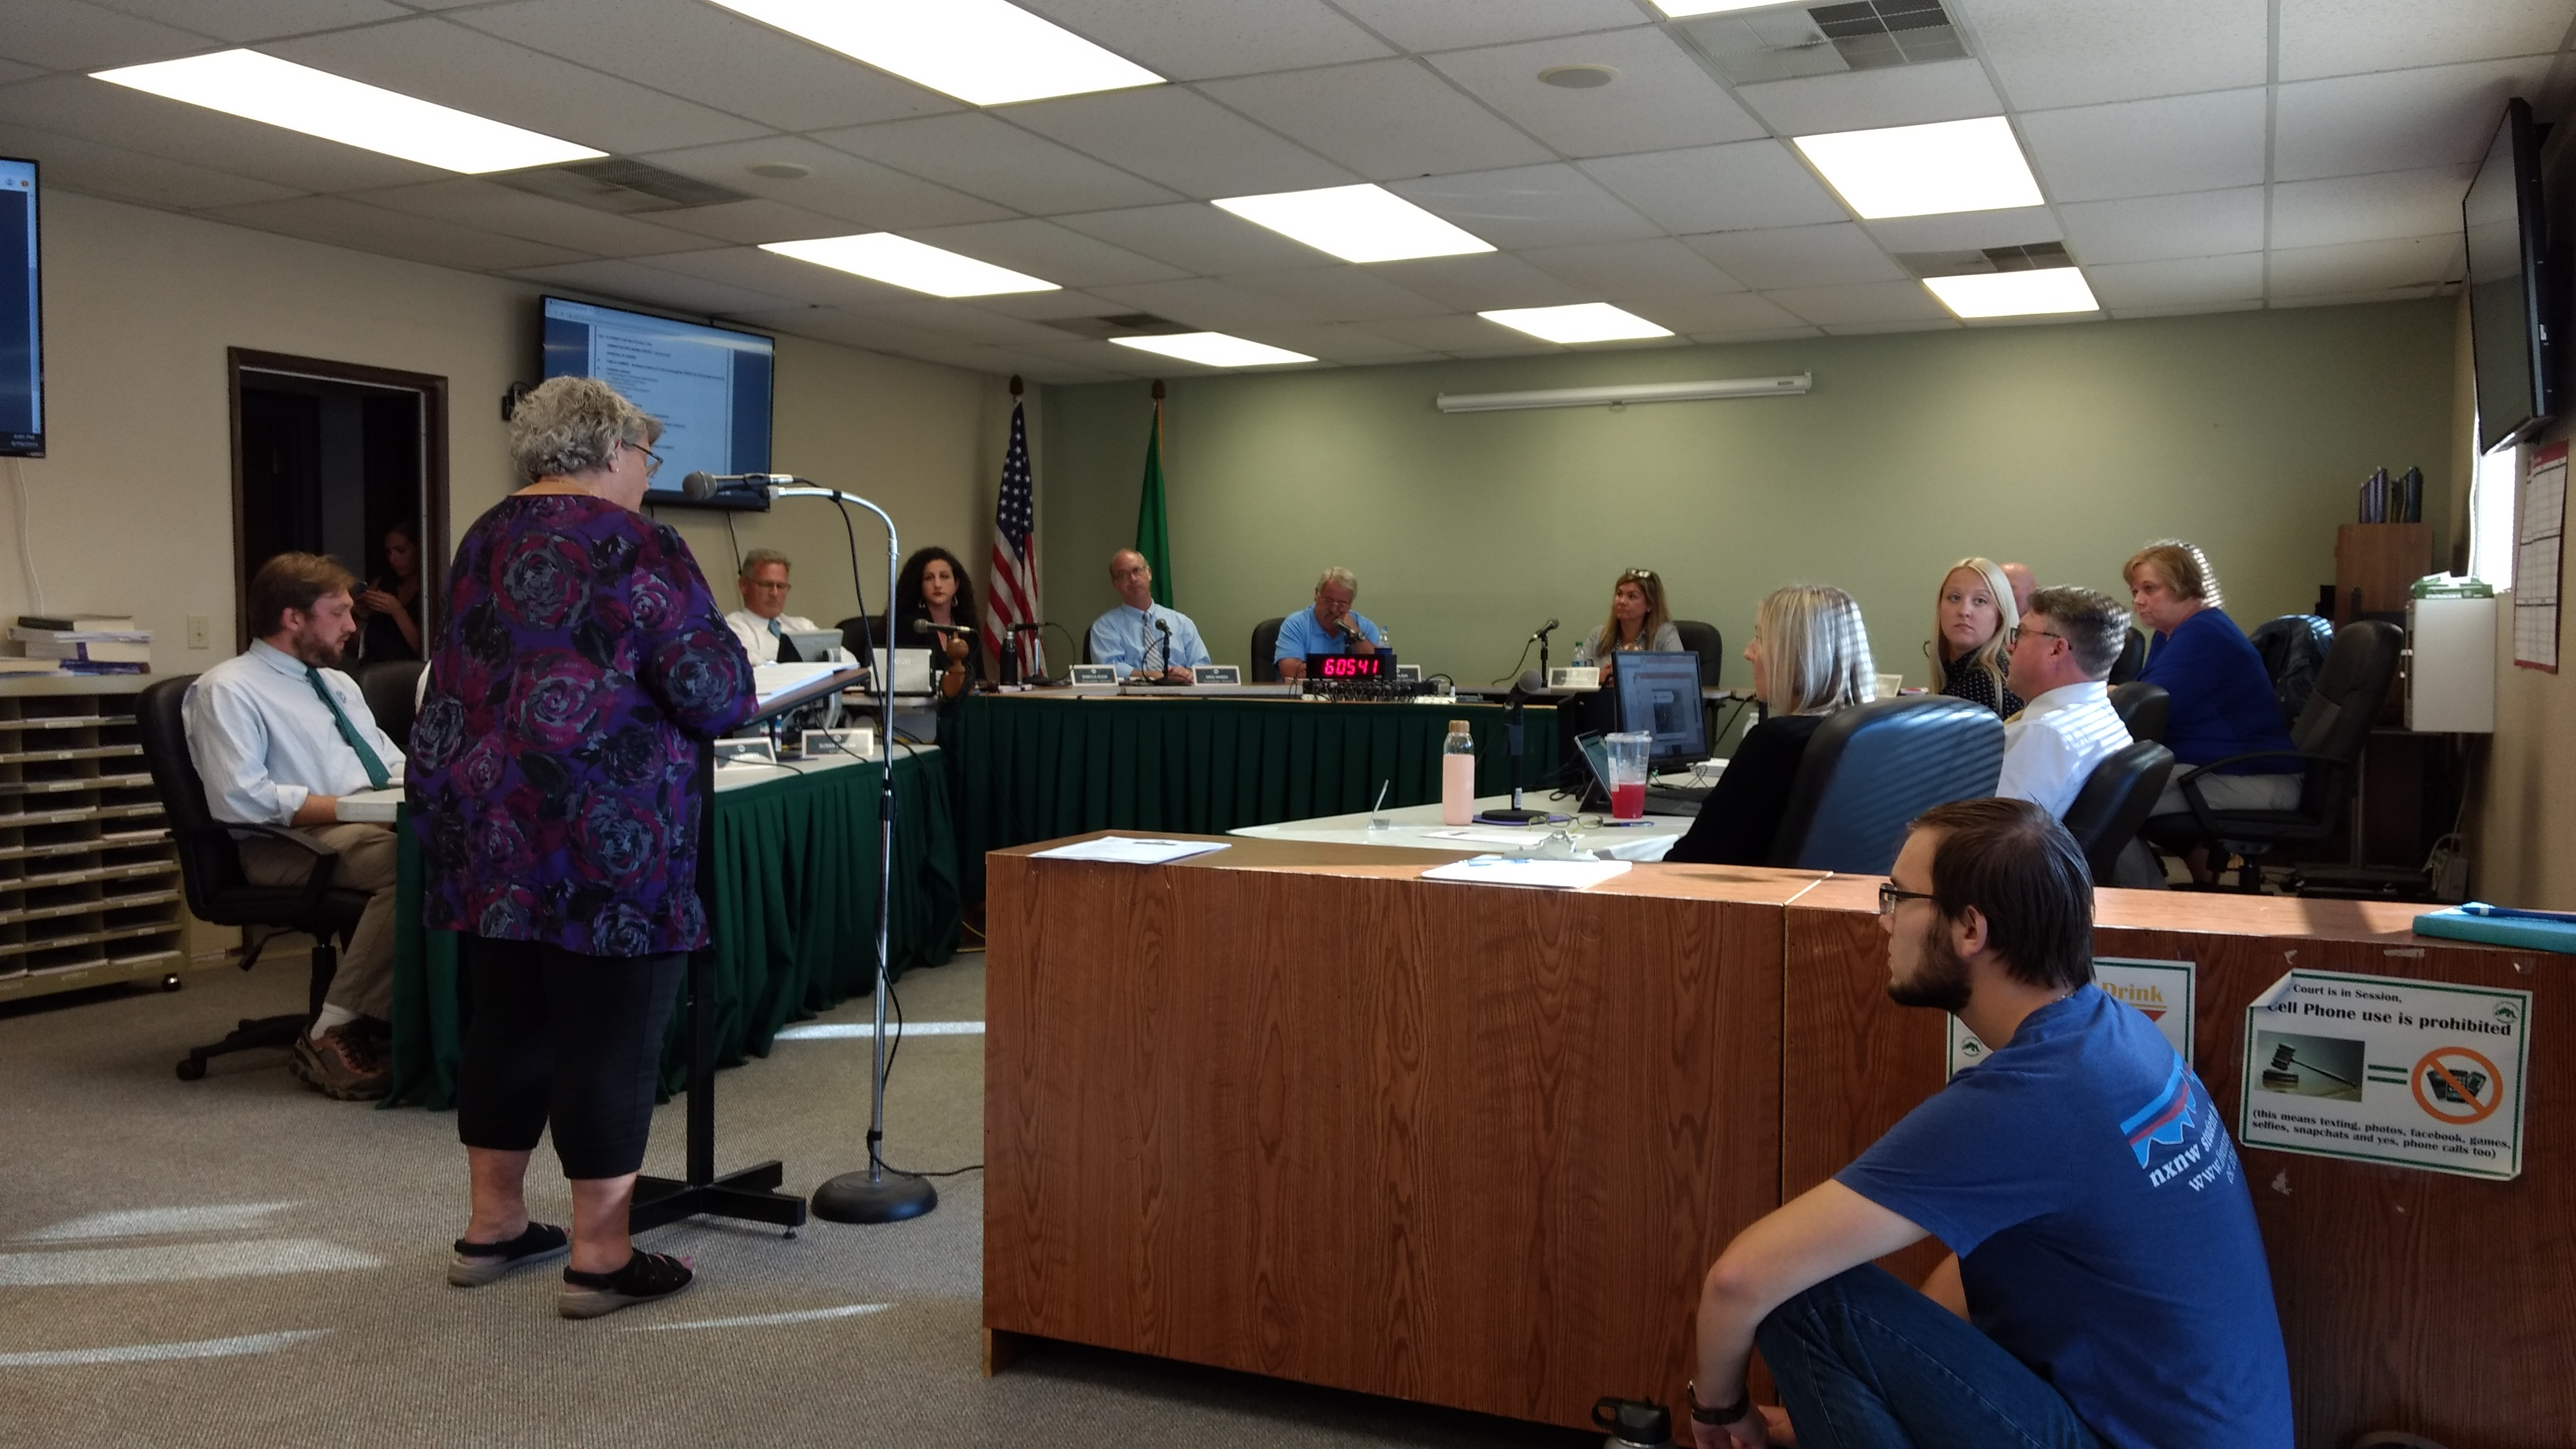 Yvonne Goldsmith addresses the Ferndale City Council with an ethics complaint about Mayor Jon Mutchler (August 19, 2019). Photo: My Ferndale News